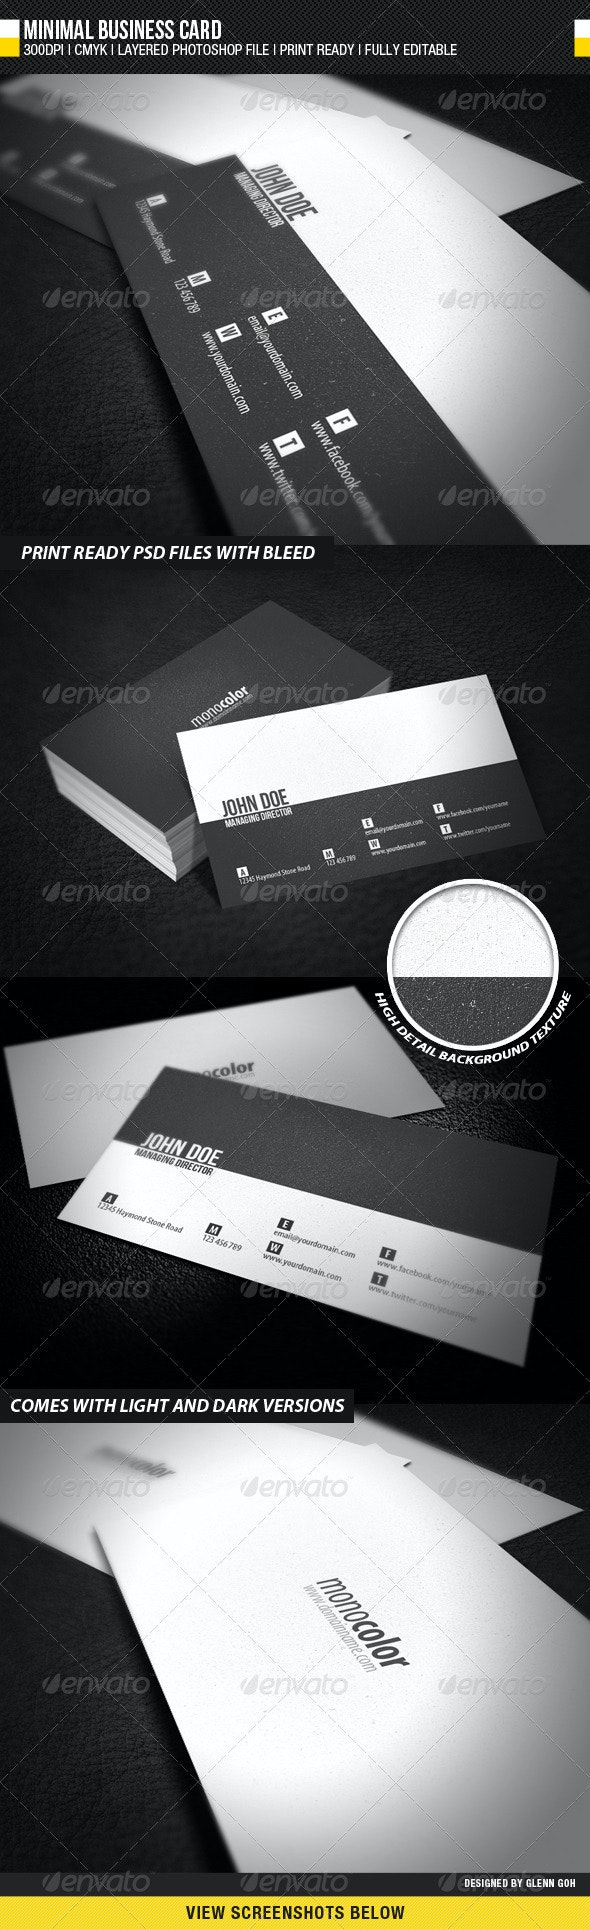 Minimal Business Card - Corporate Business Cards